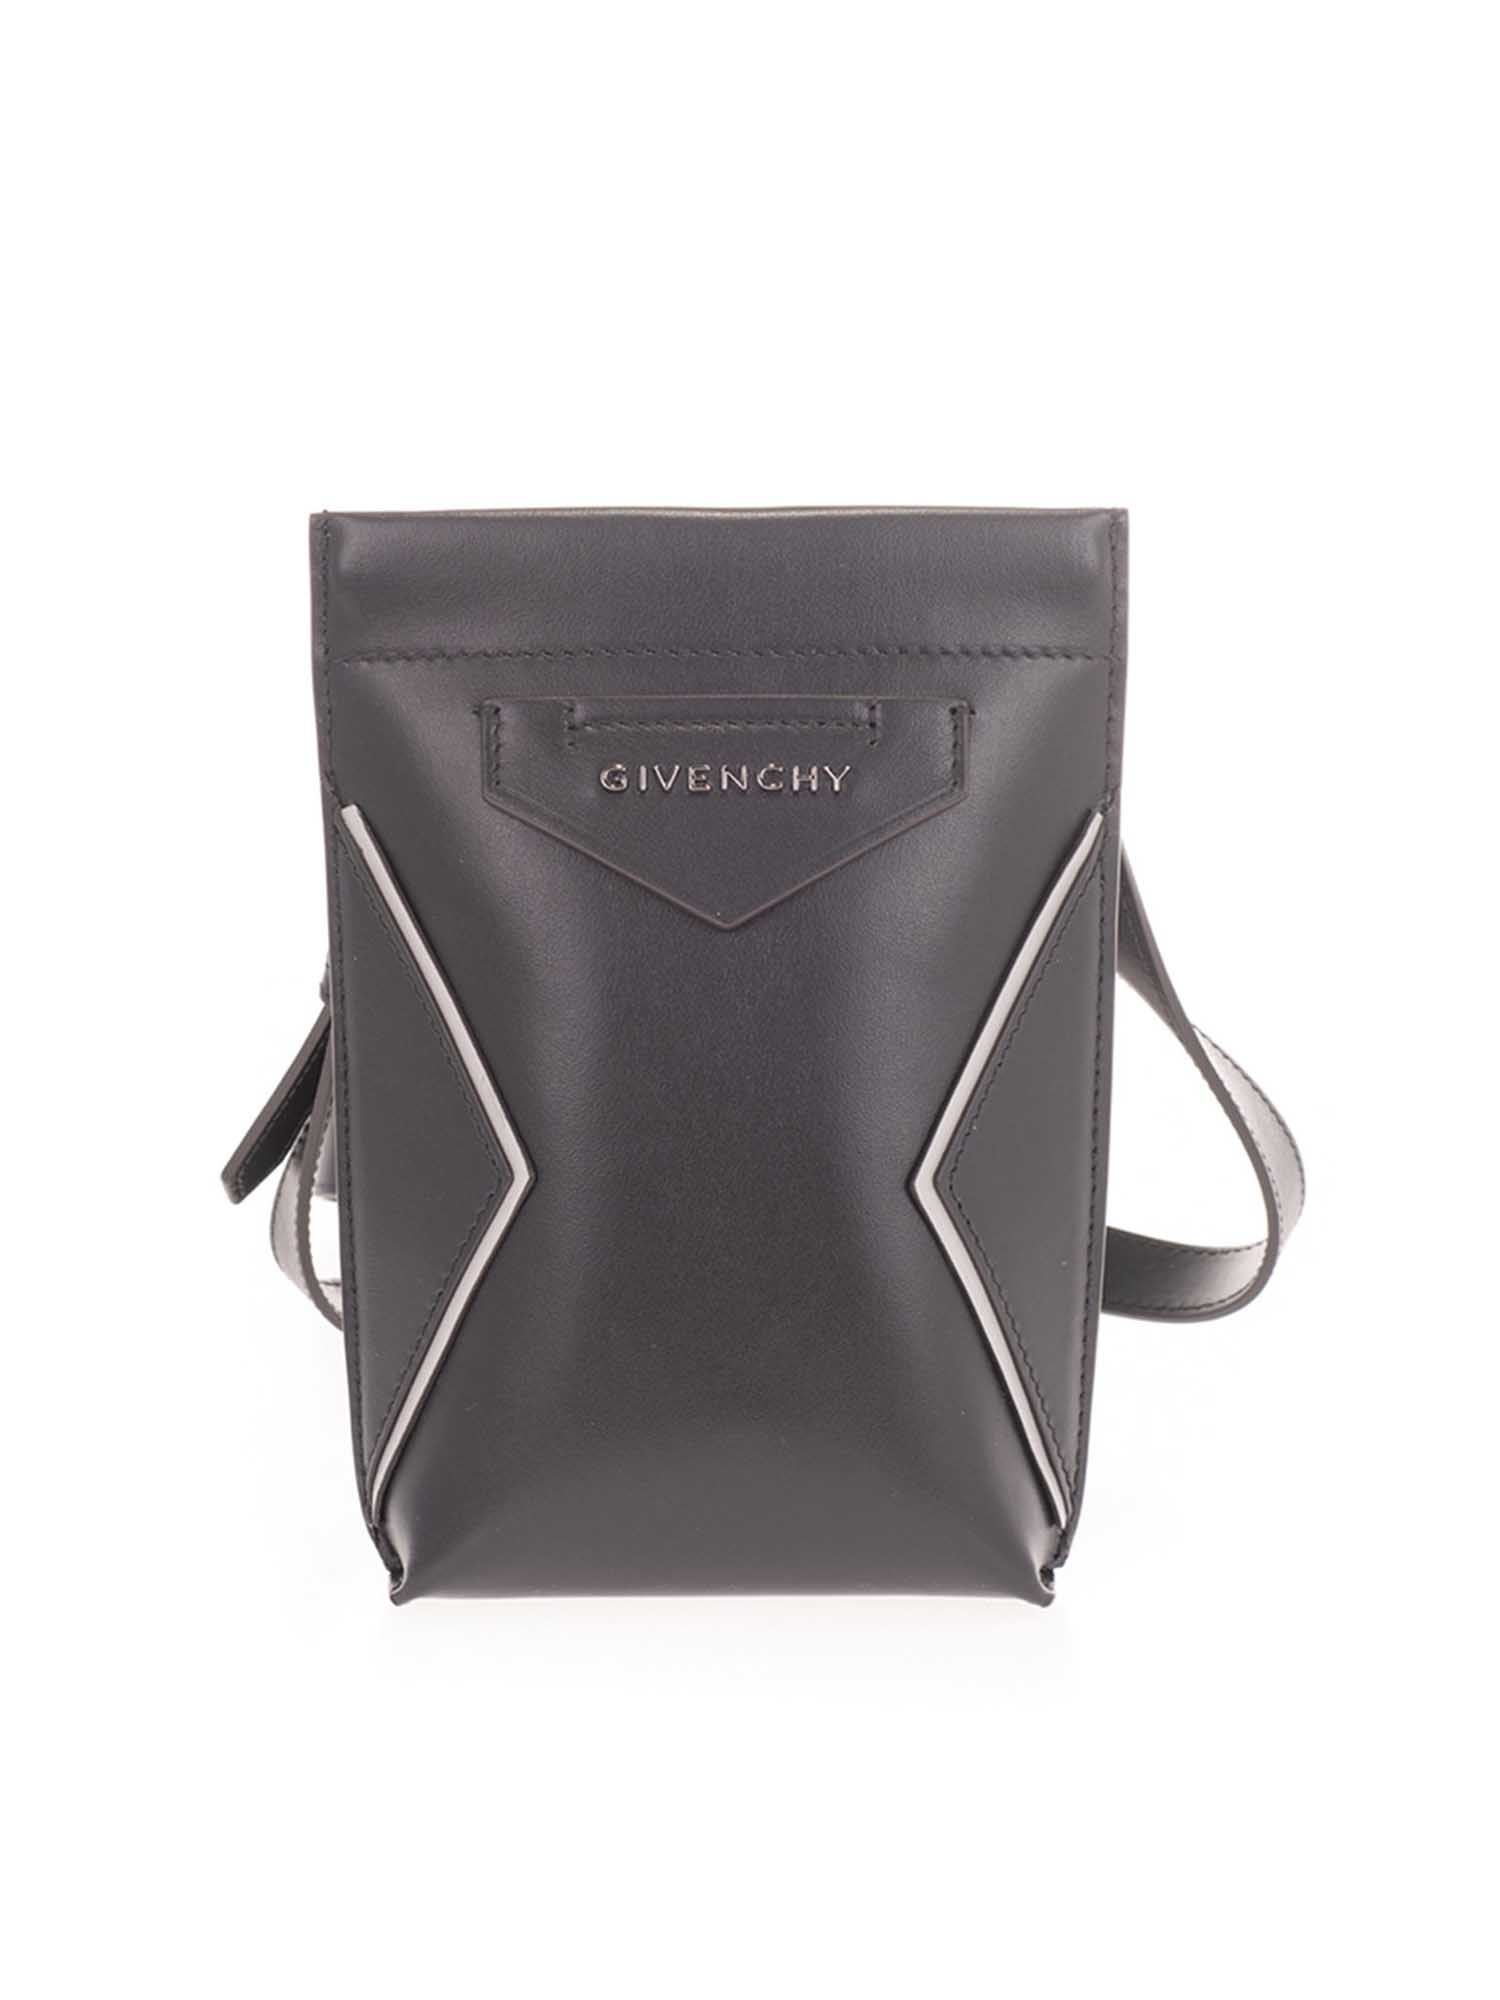 Givenchy Triangle Logo Phone Holder In Black